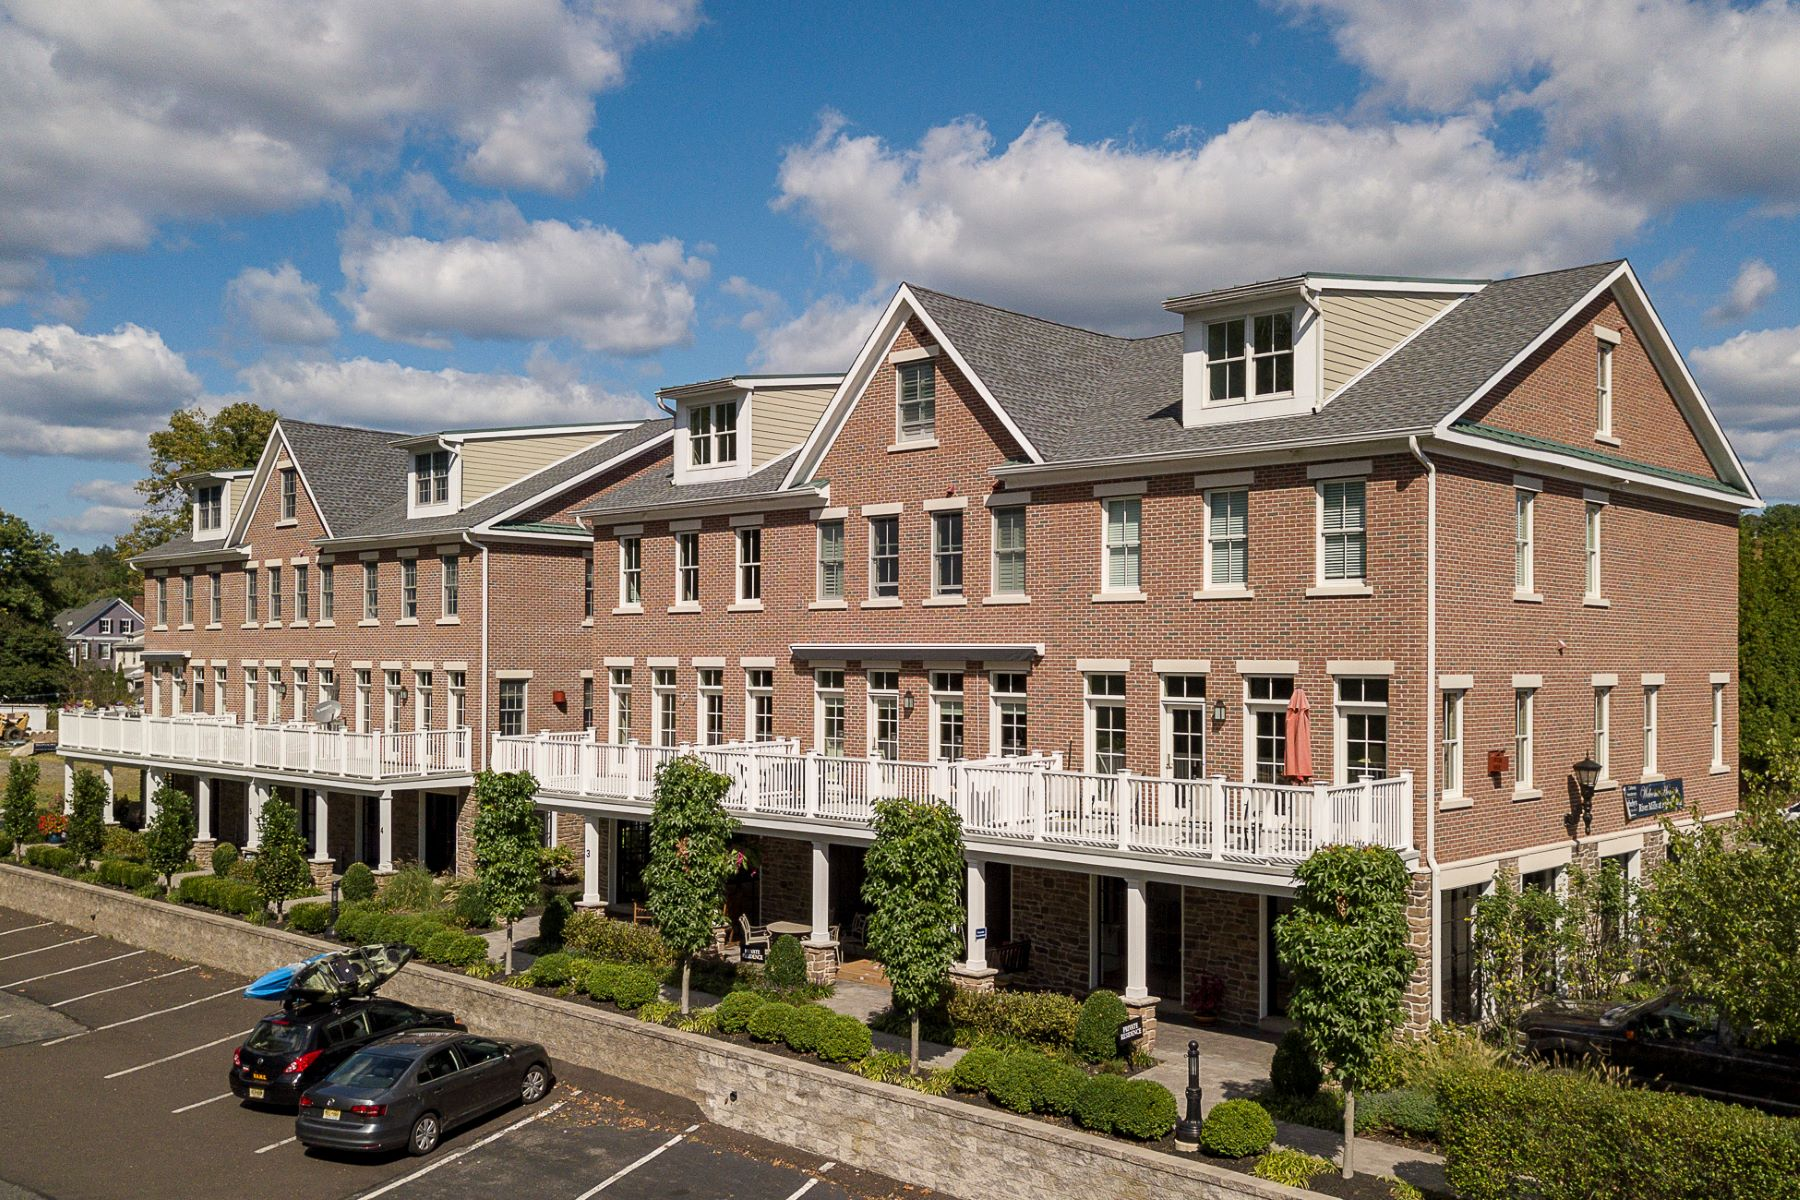 townhouses por un Venta en Outstanding Value in River Mills At Frenchtown 1 River Mills Drive, Frenchtown, Nueva Jersey 08825 Estados Unidos